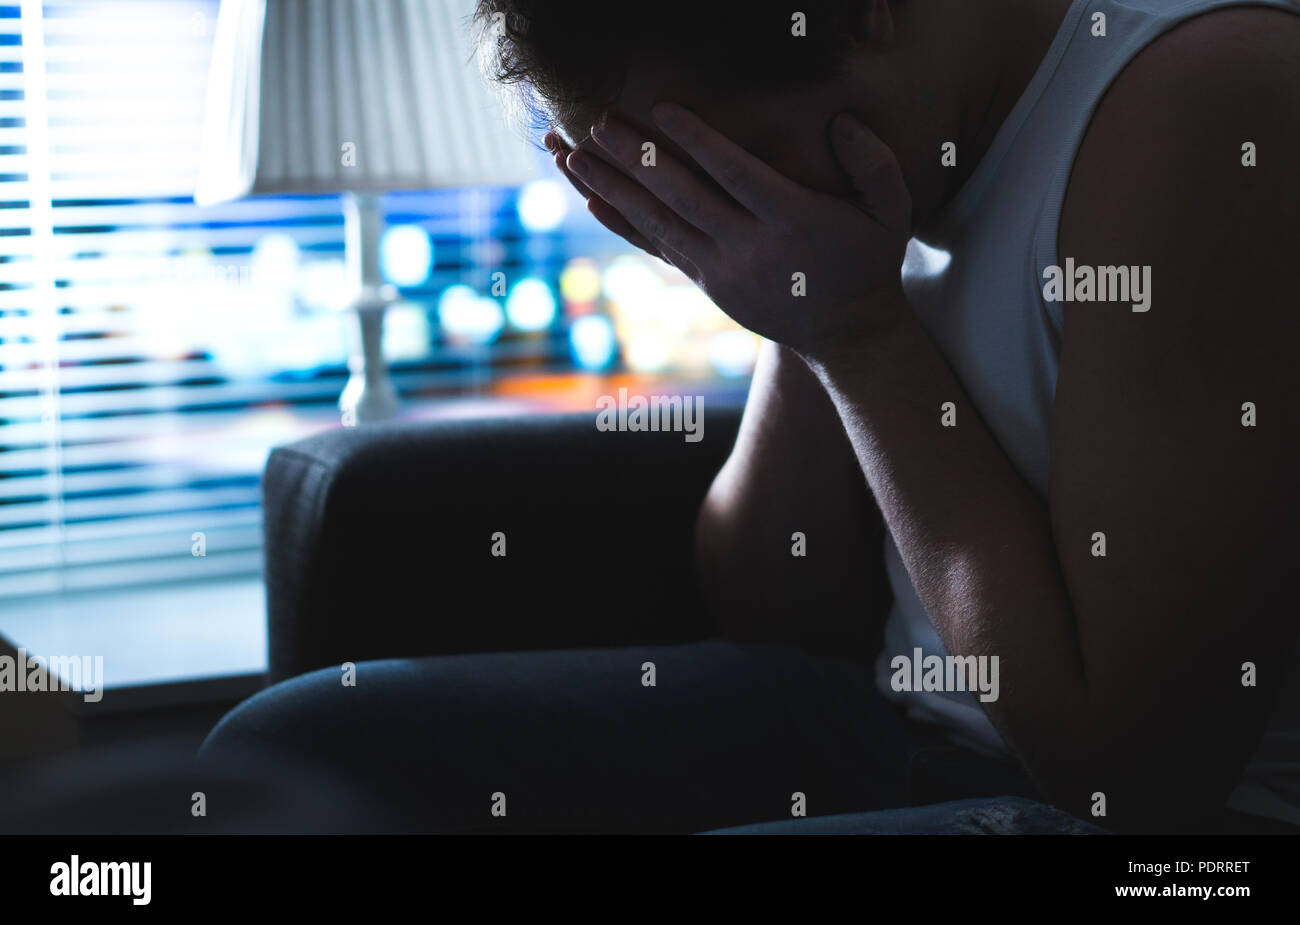 Sad and unhappy man covering face with hands in dark by window. Burnout, overwork or bankruptcy. Heartbroken person missing at night. - Stock Image